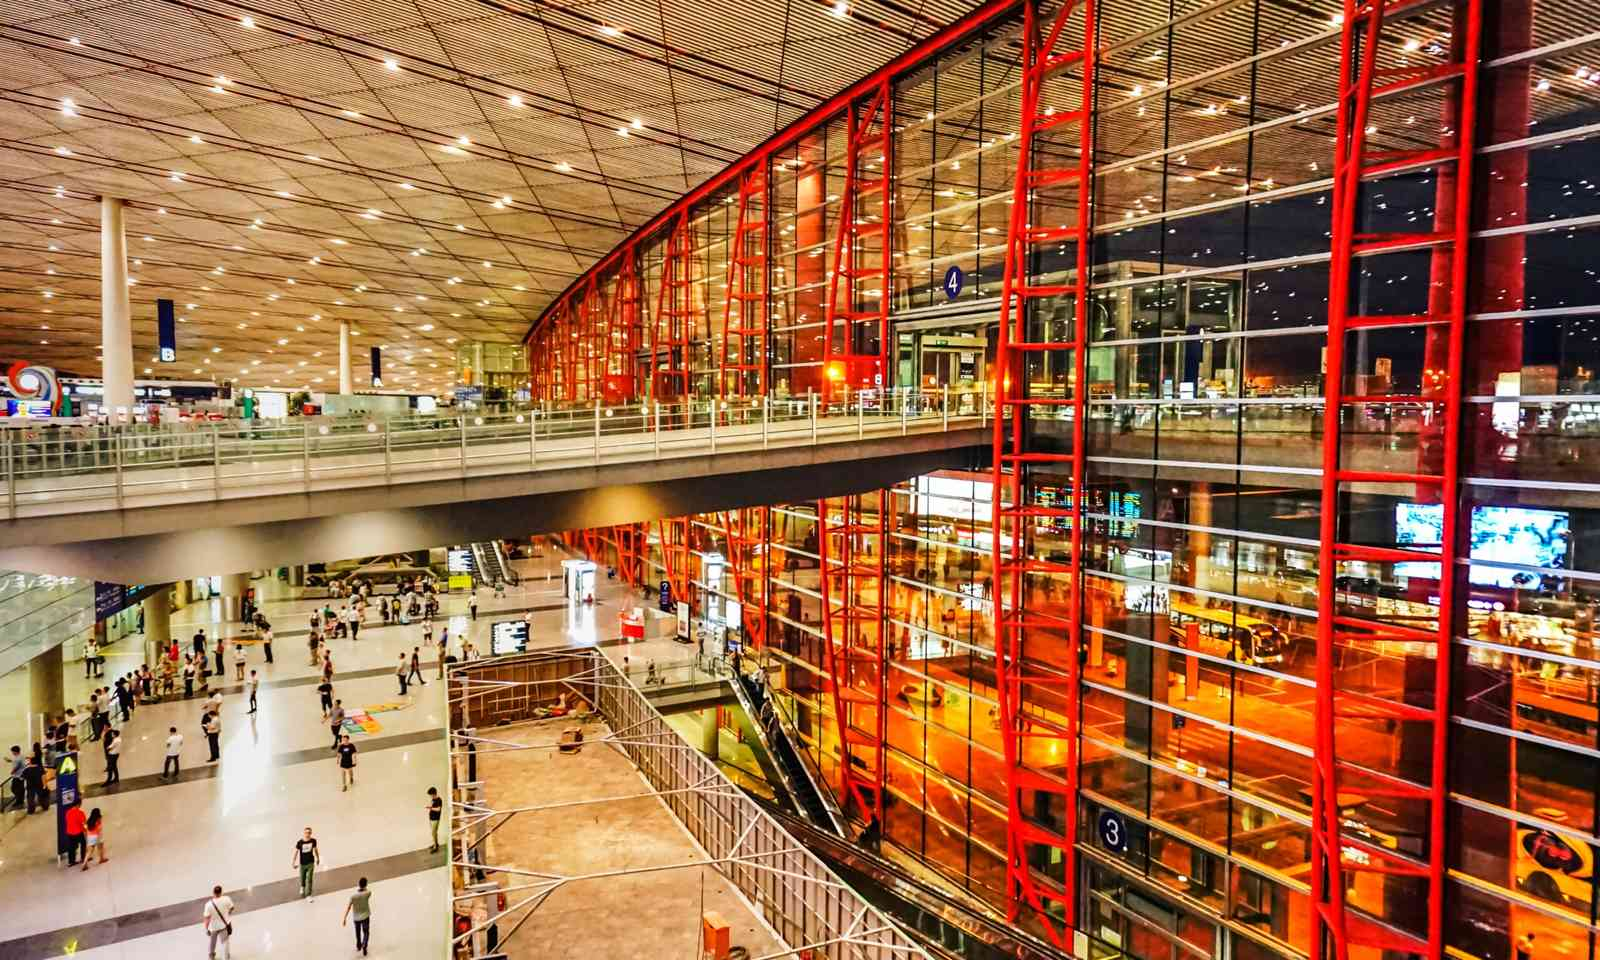 The Red Terminal (Dreamstime)